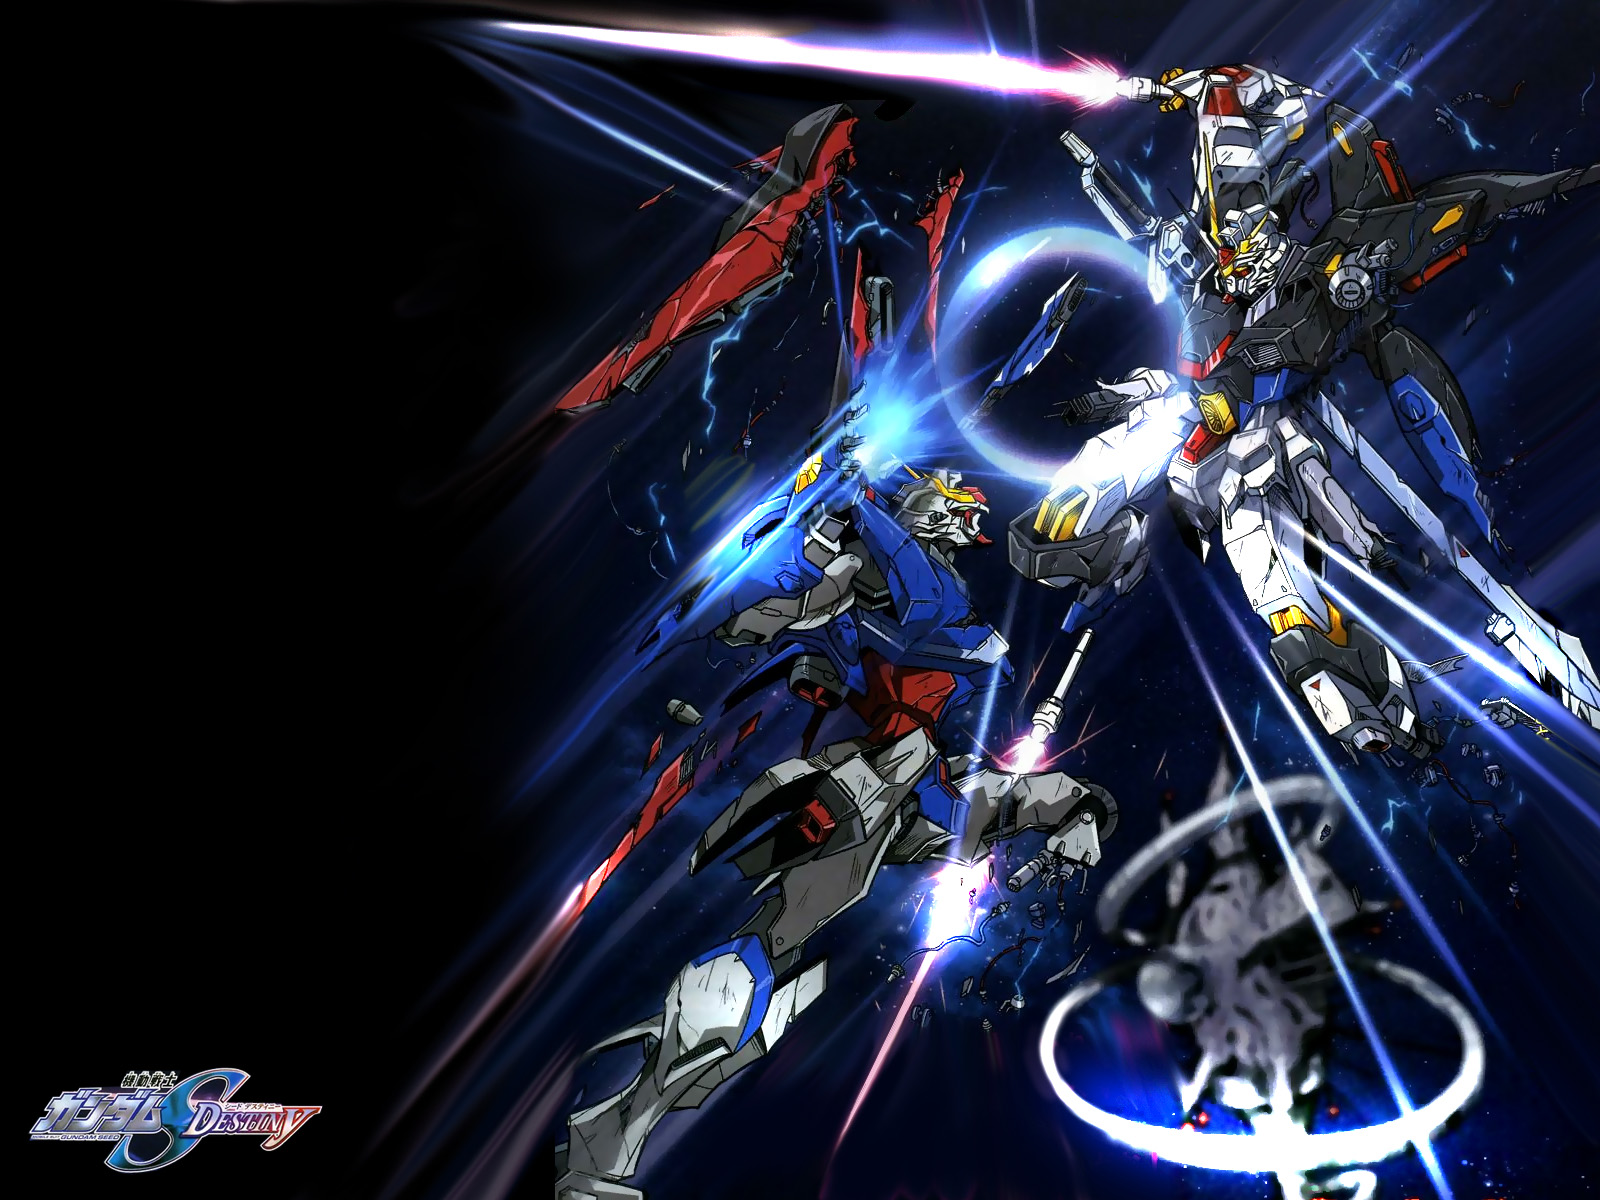 Gundam Hd Wallpaper 00 Download Wallpaper DaWallpaperz 1600x1200